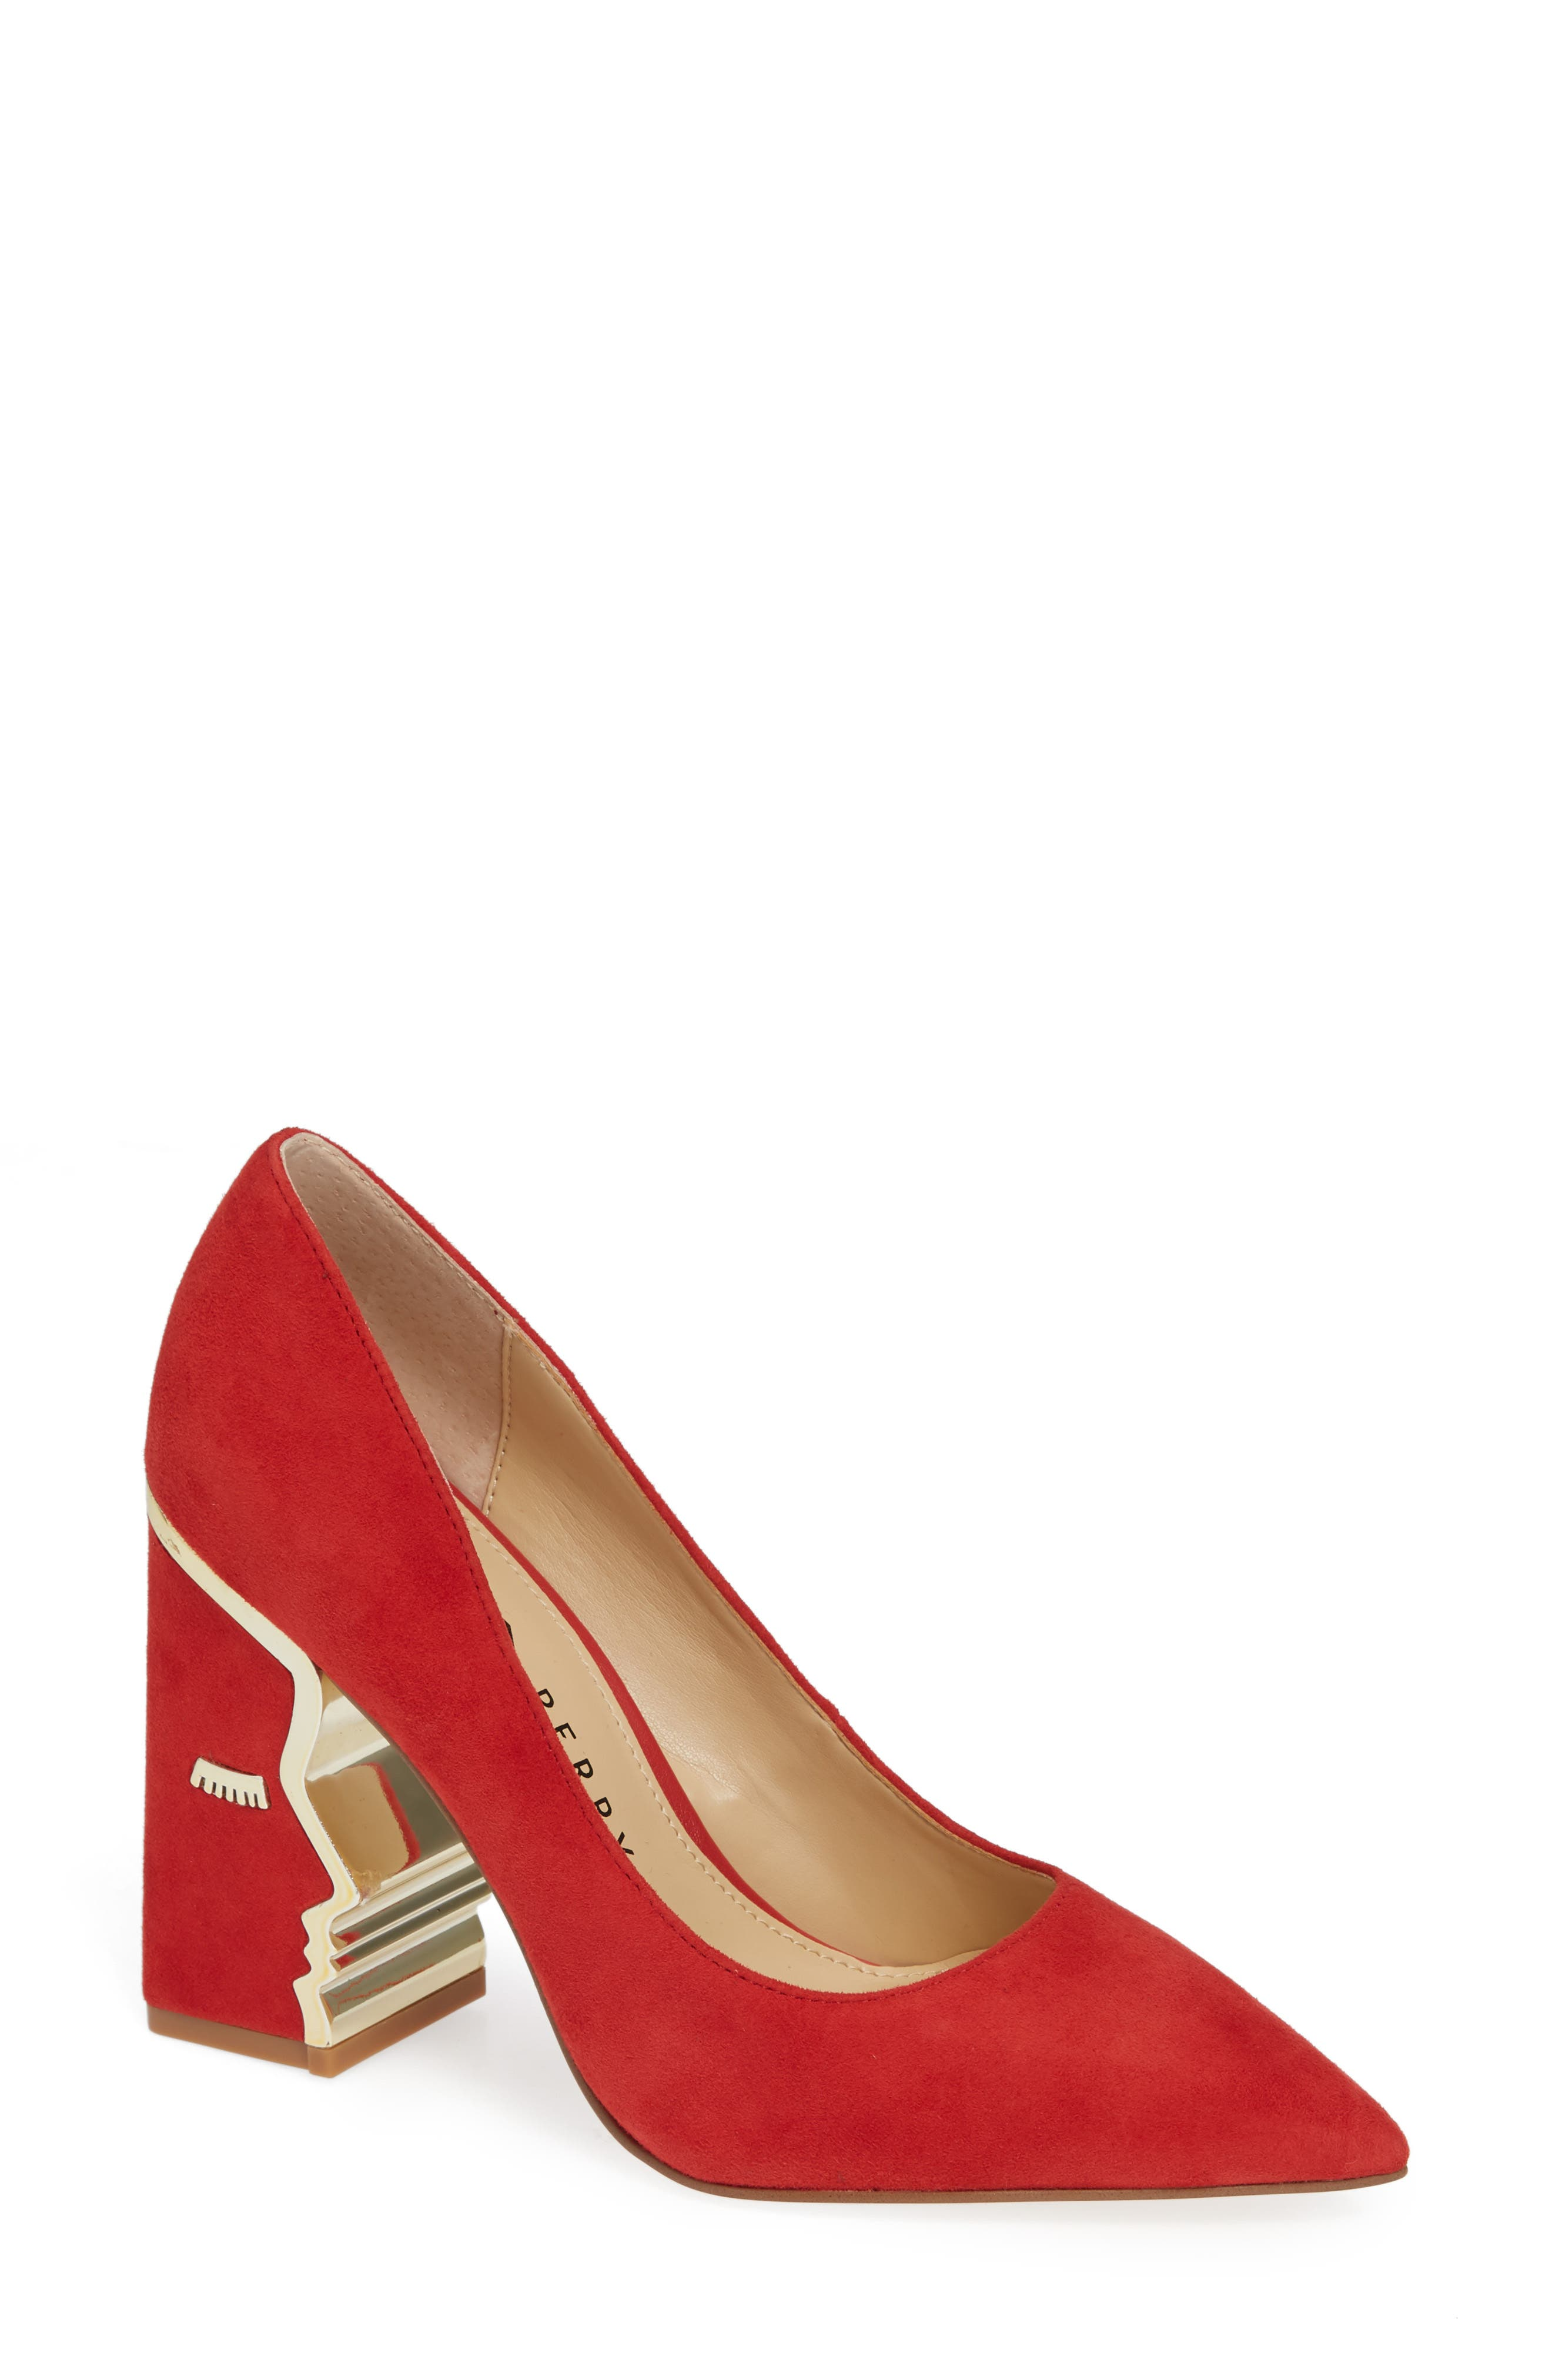 The Celina Pump, Spanish Red